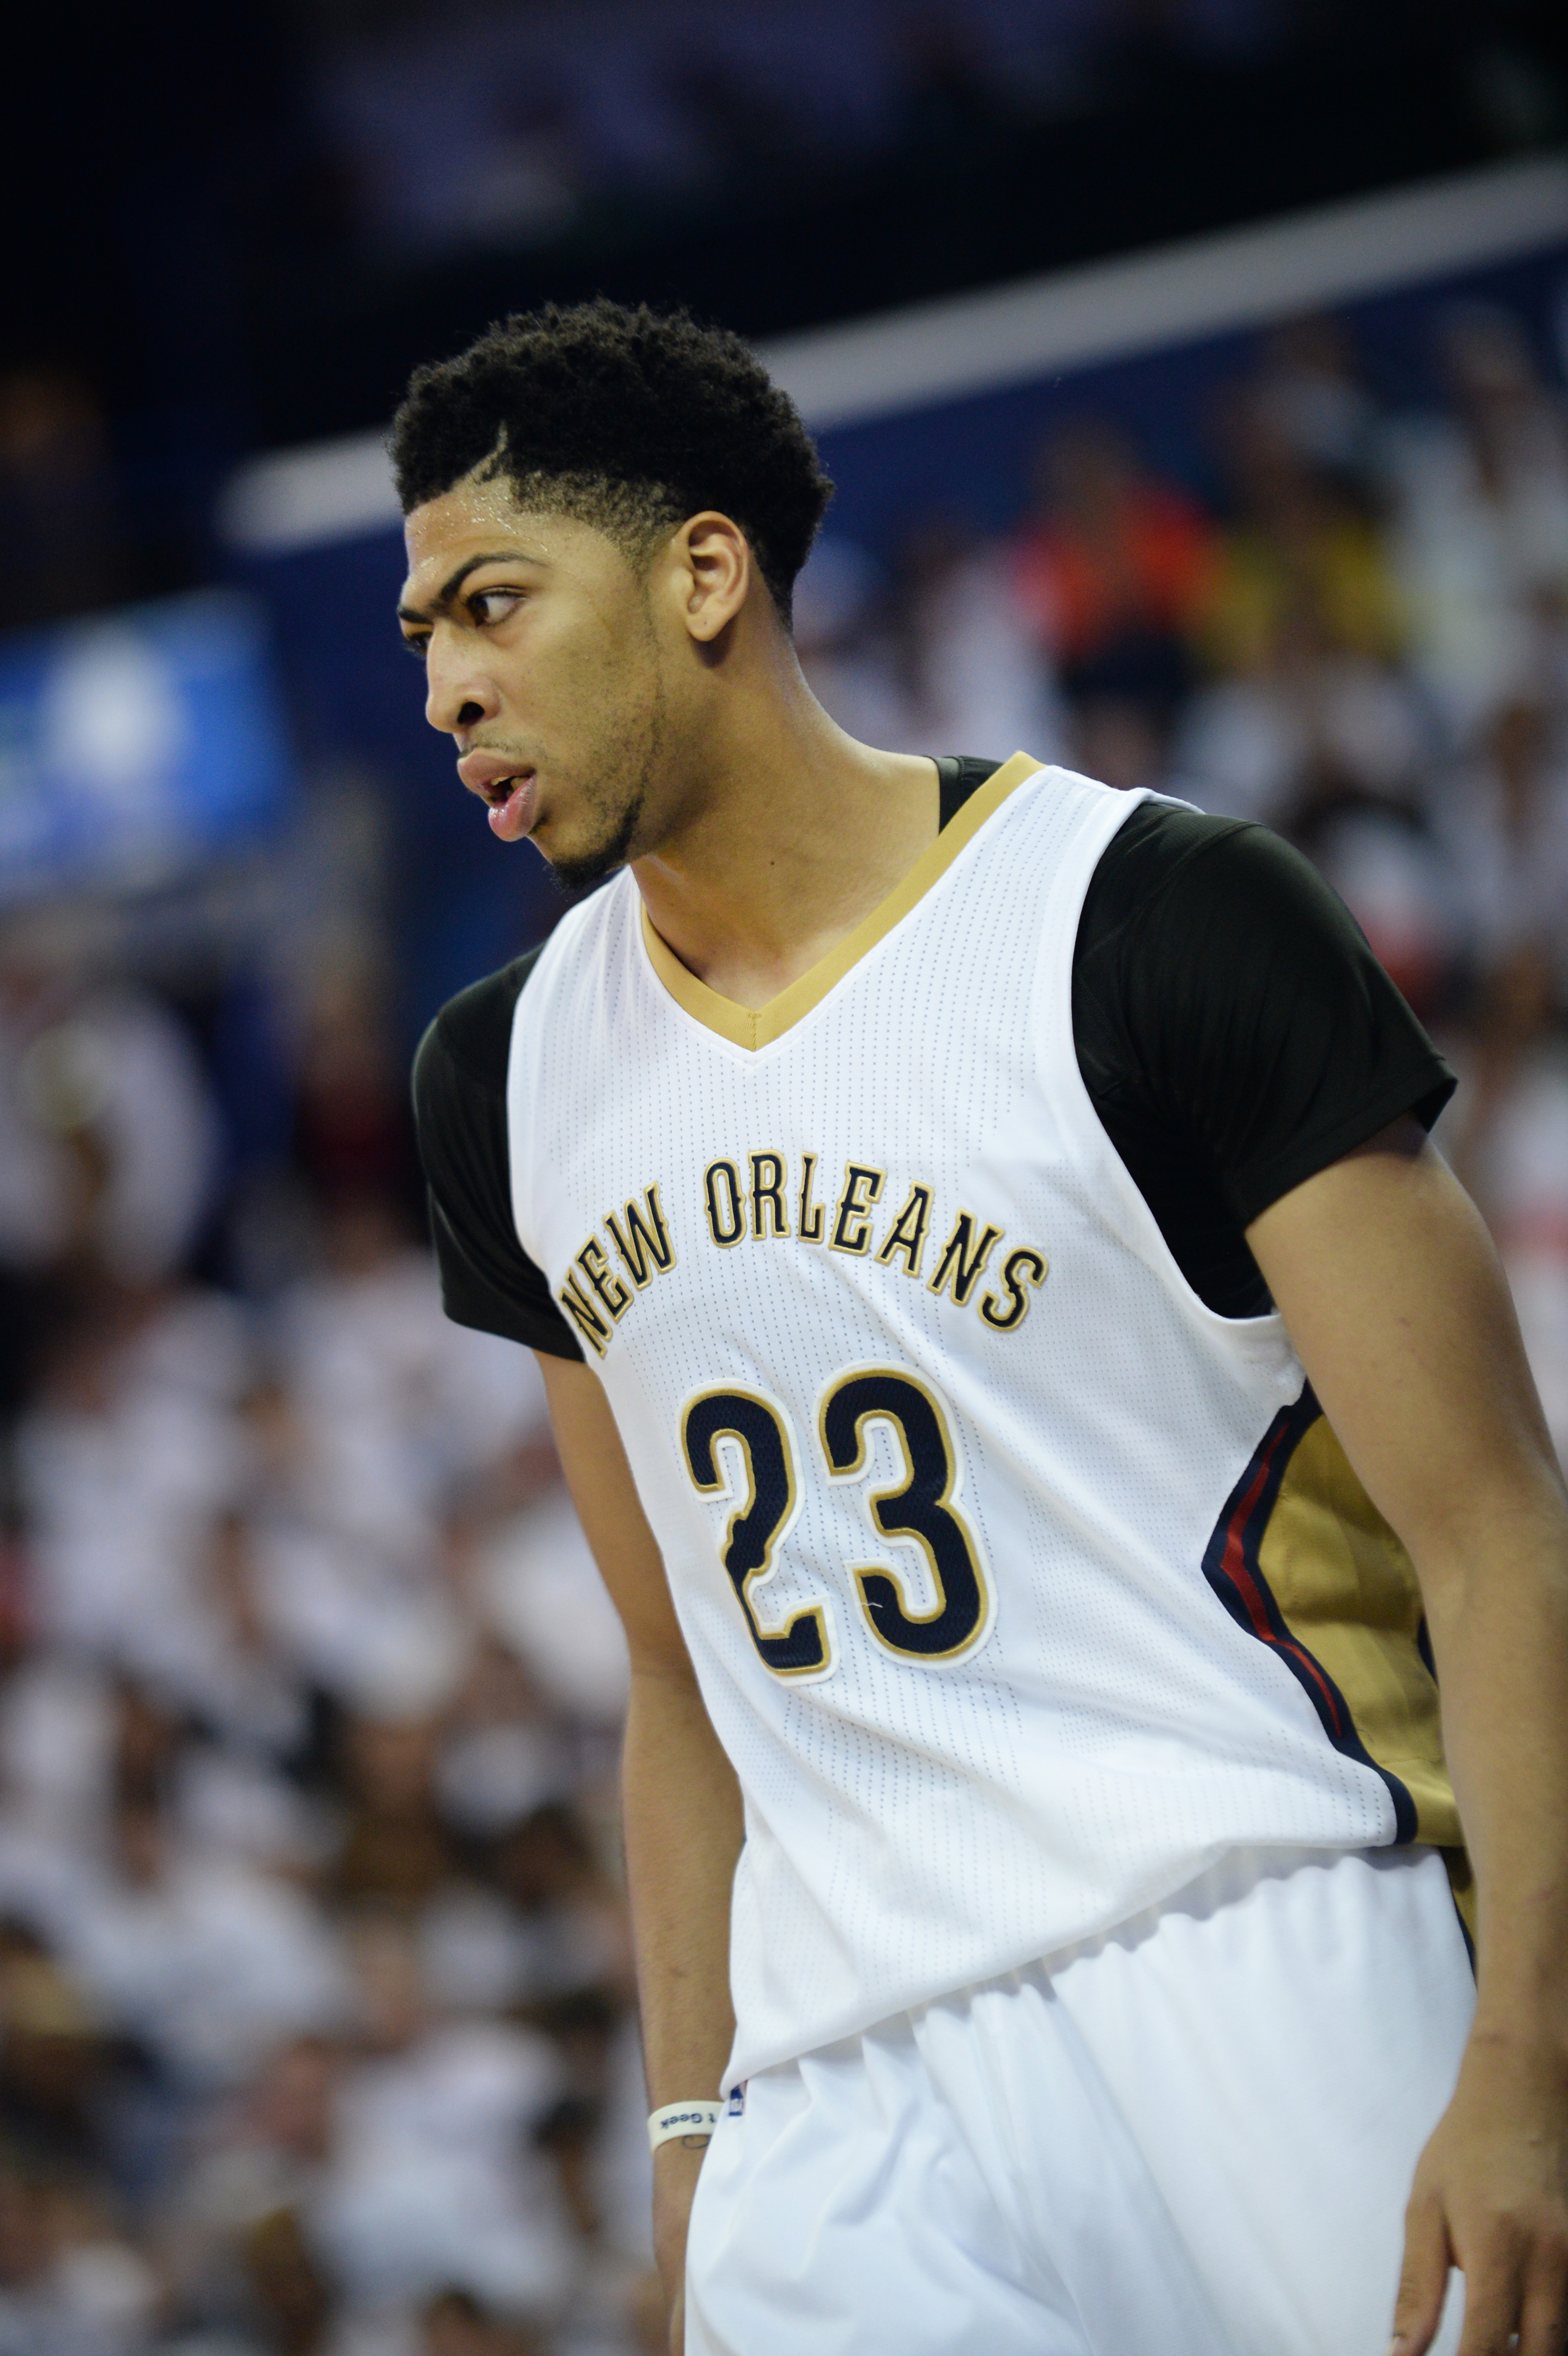 NEW ORLEANS, LA - APRIL 25: Anthony Davis #23 of the New Orleans Pelicans during Game Four of the Western Conference Quarterfinals against the Golden State Warriors during the NBA Playoffs at Smoothie King Center on April 25, 2015 in New Orleans, Louisian